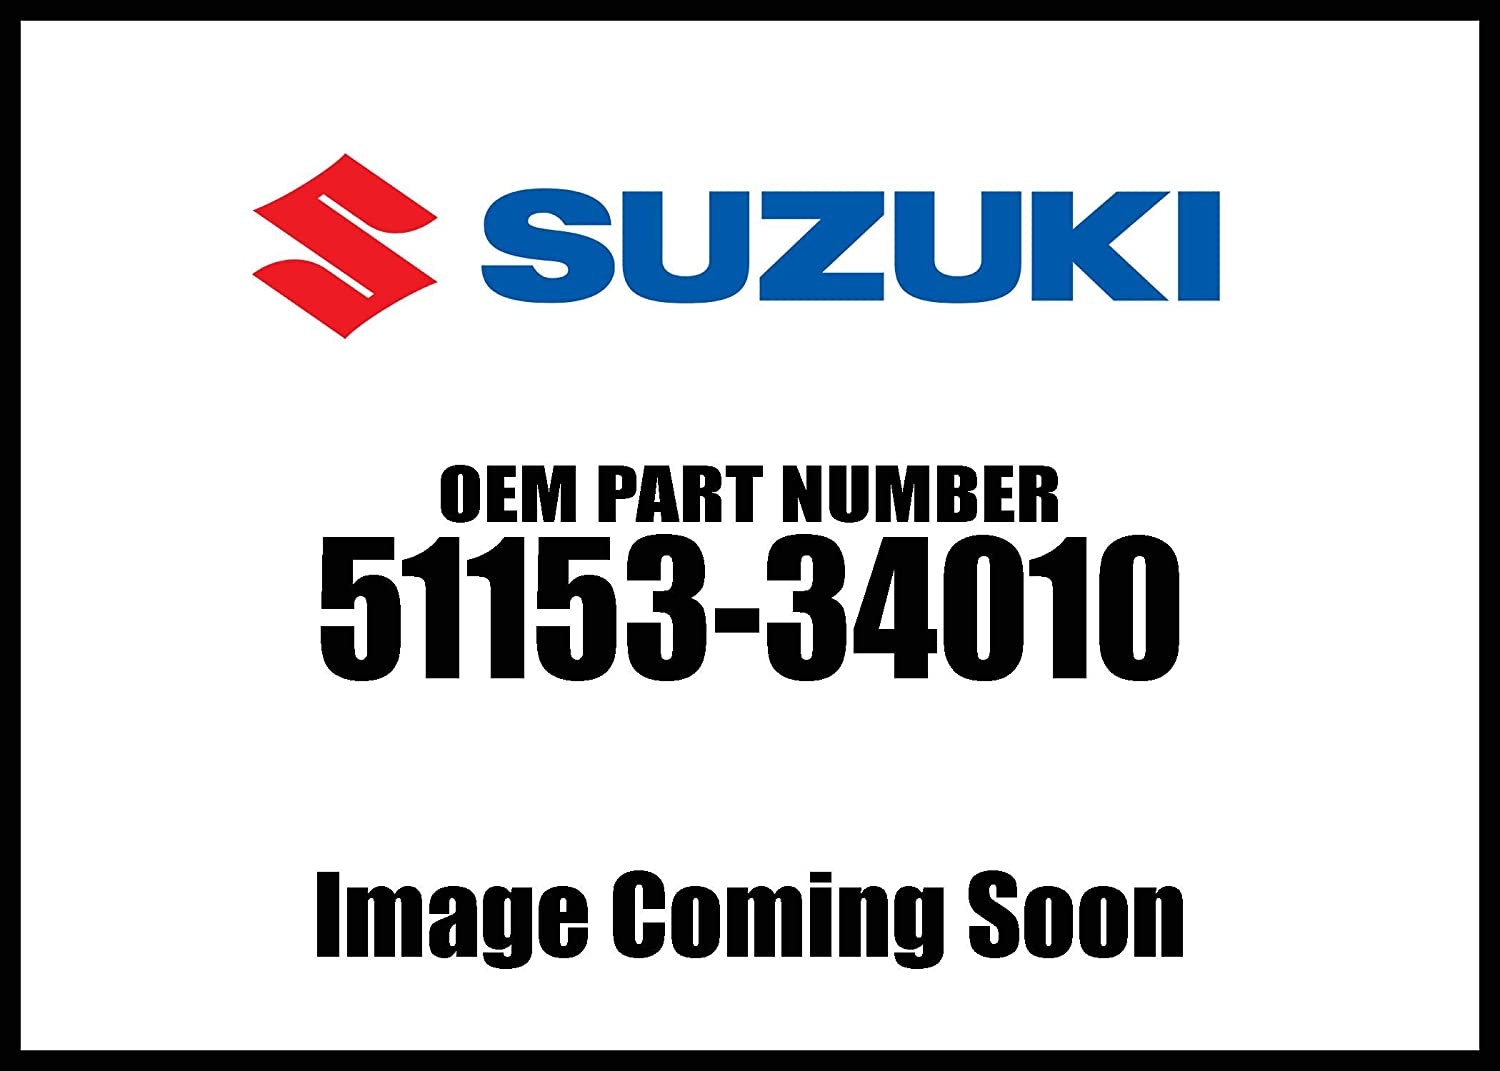 Suzuki Oil Seal Fr For 51153-34010 New Oem